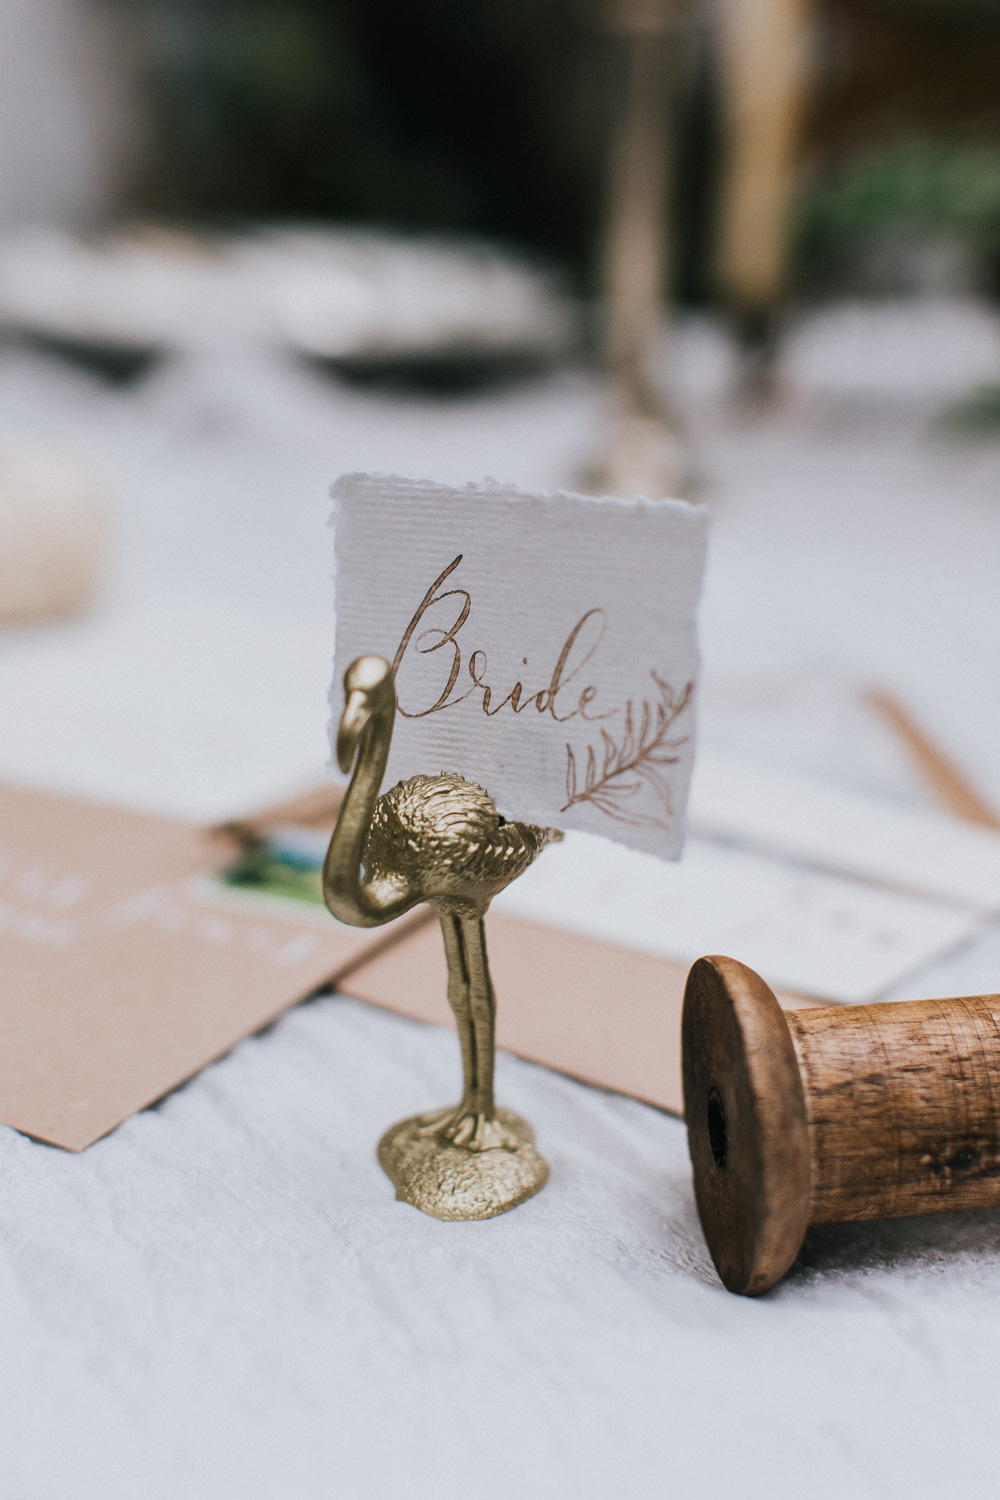 Stylish Autumnal Wedding Shoot From Top UK Wedding Suppliers The